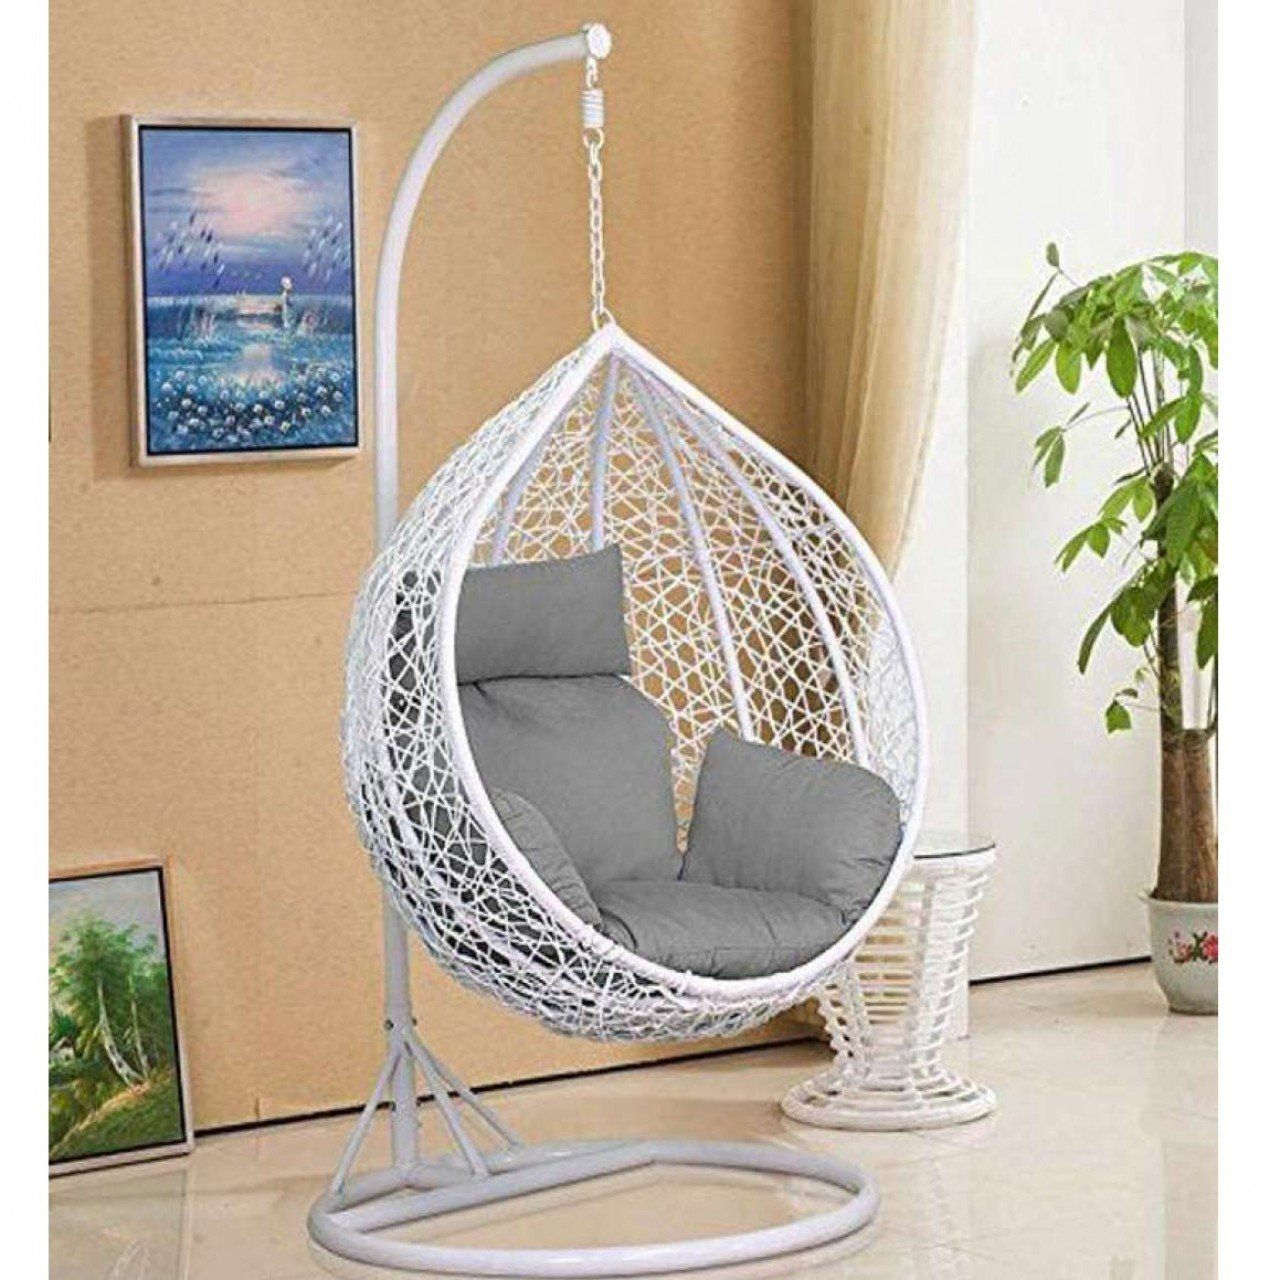 Wooden sofa sets wooden modern sofa set wooden living room. Egg Hanging Swing Chair Price In Pakistan - Good Root Info